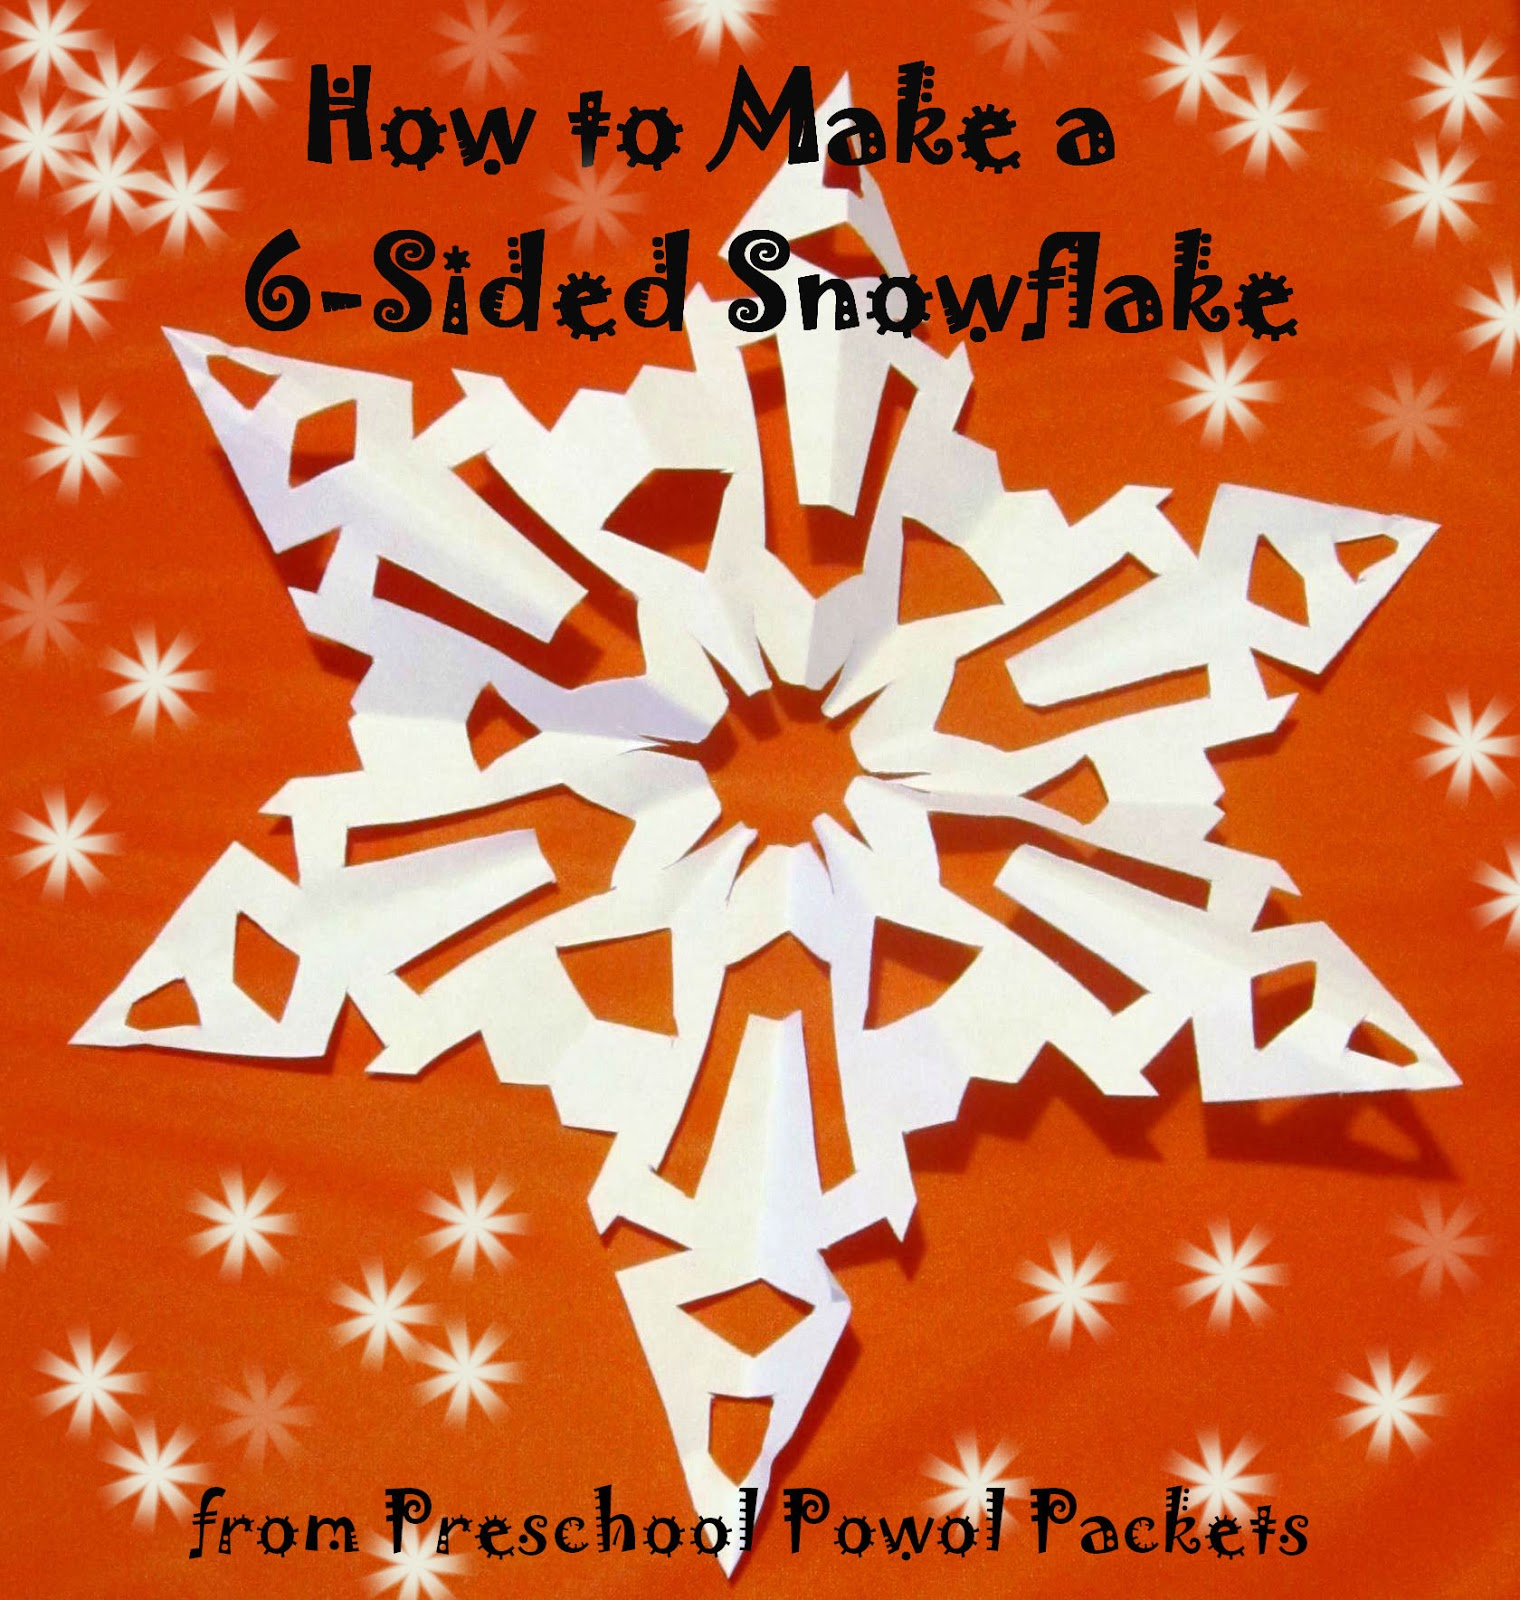 how to make a 6 sided snowflake preschool powol packets